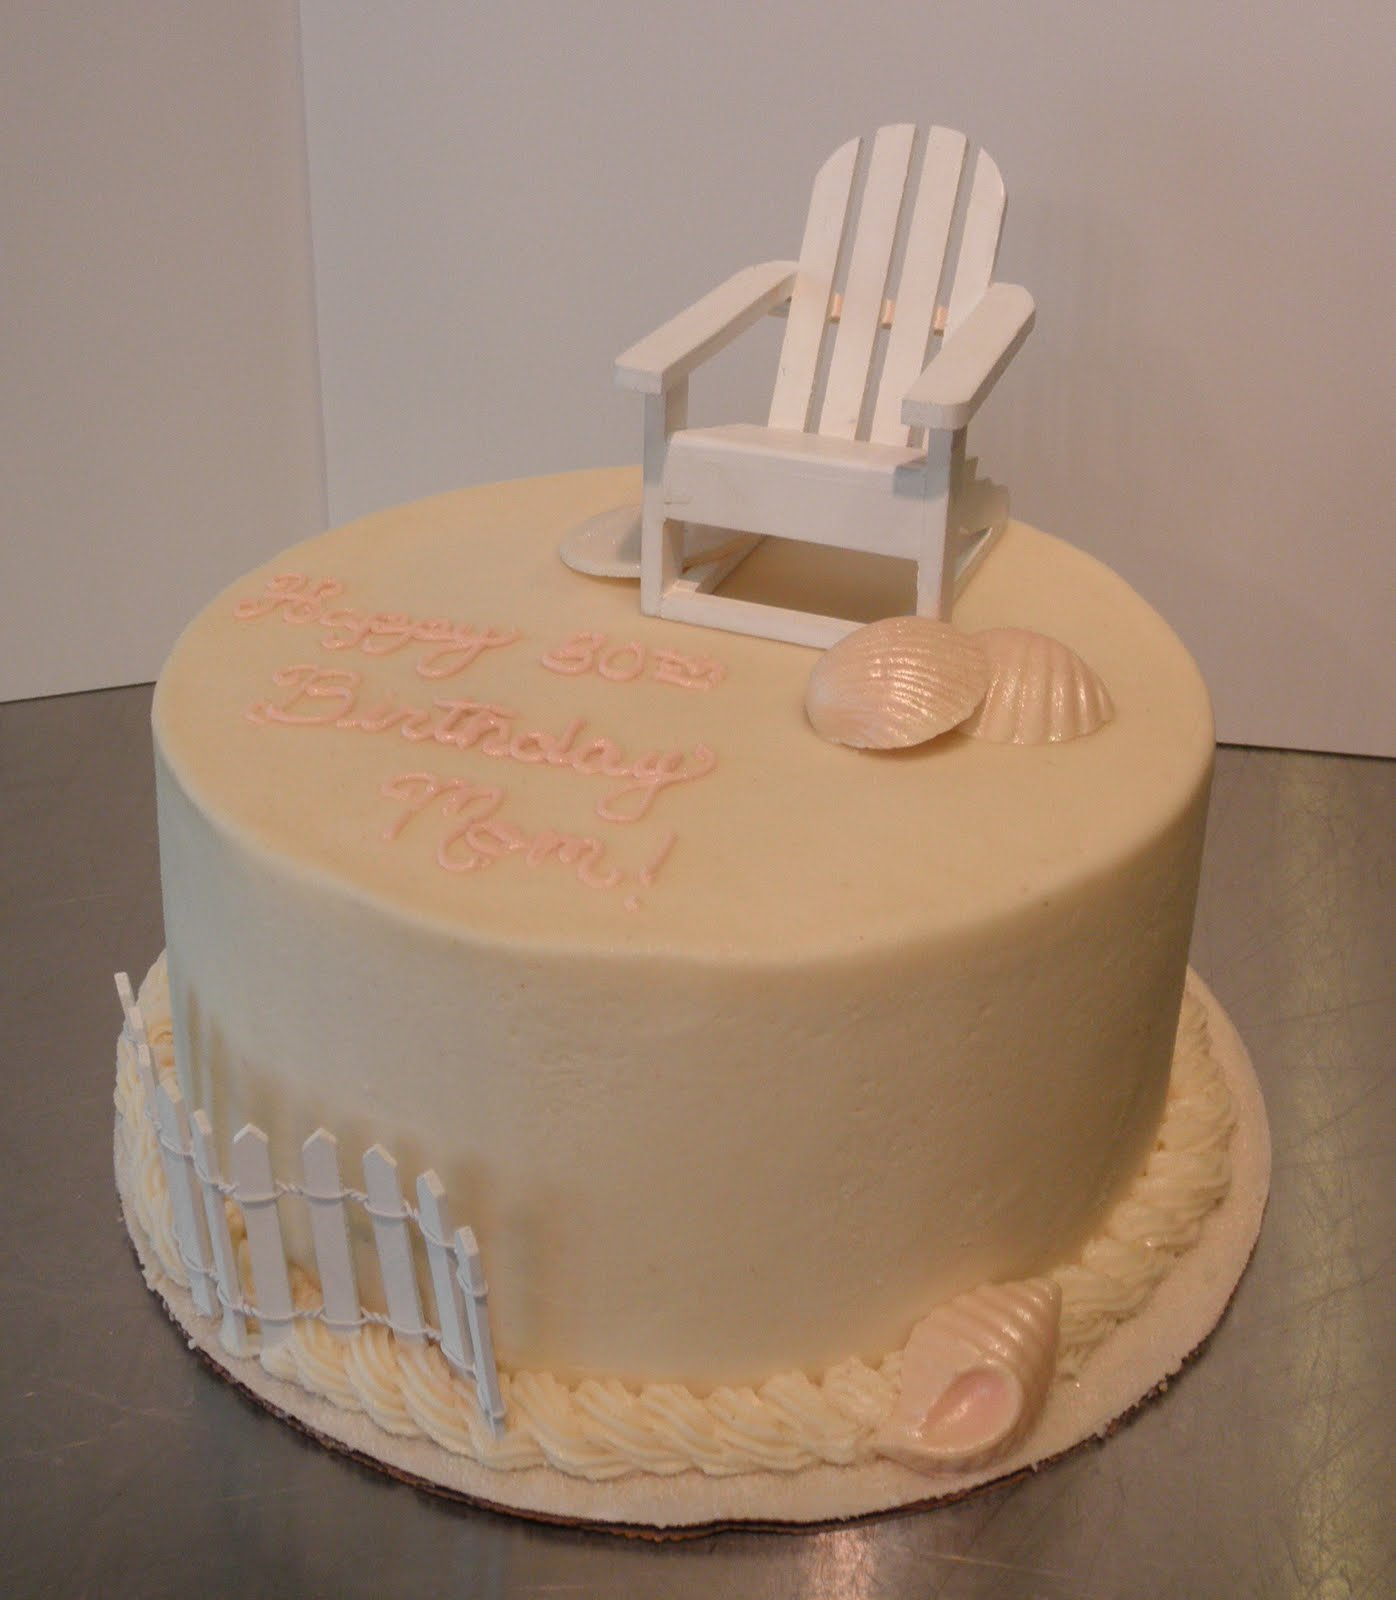 Sweet T39s Cake Design Adirondack Beach Chair And Seashell